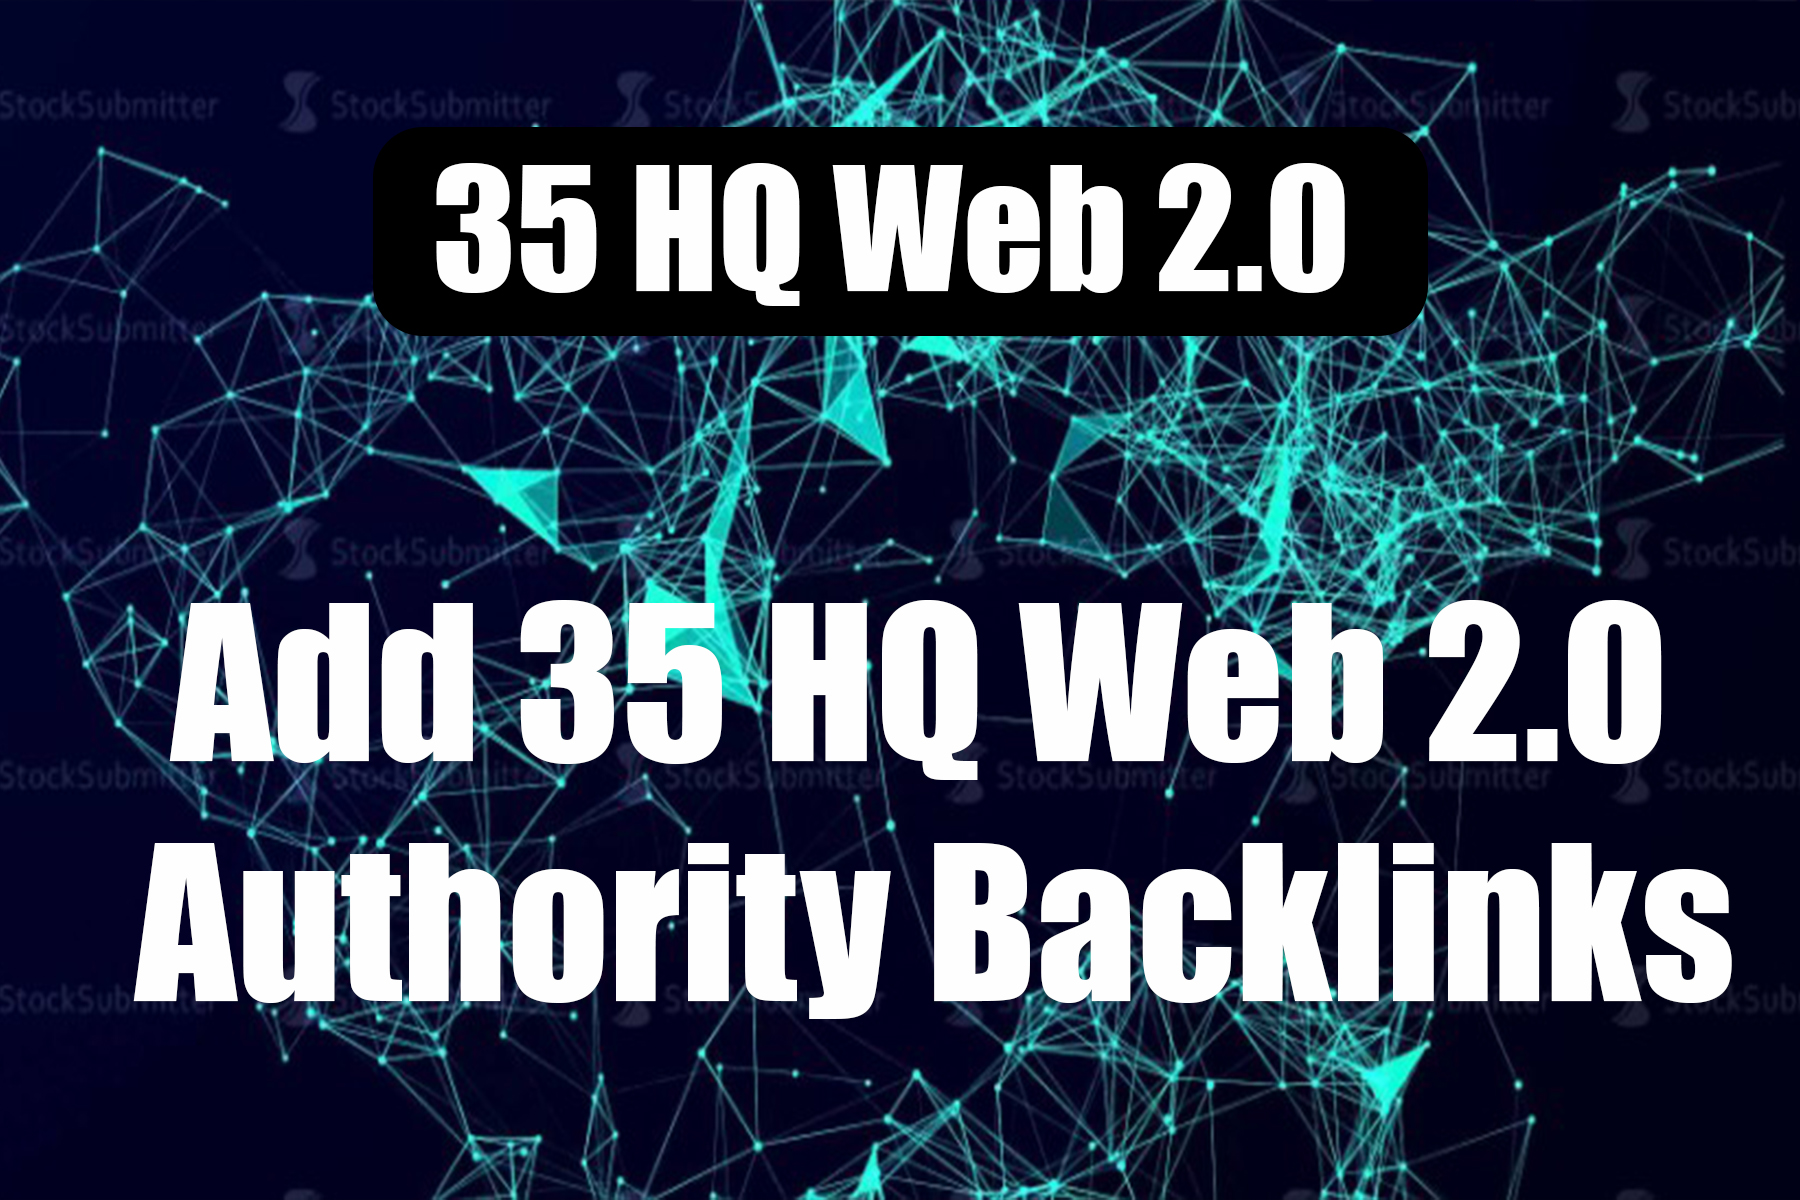 Add 35 HQ Web 2.0 Authority high quality Backlinks